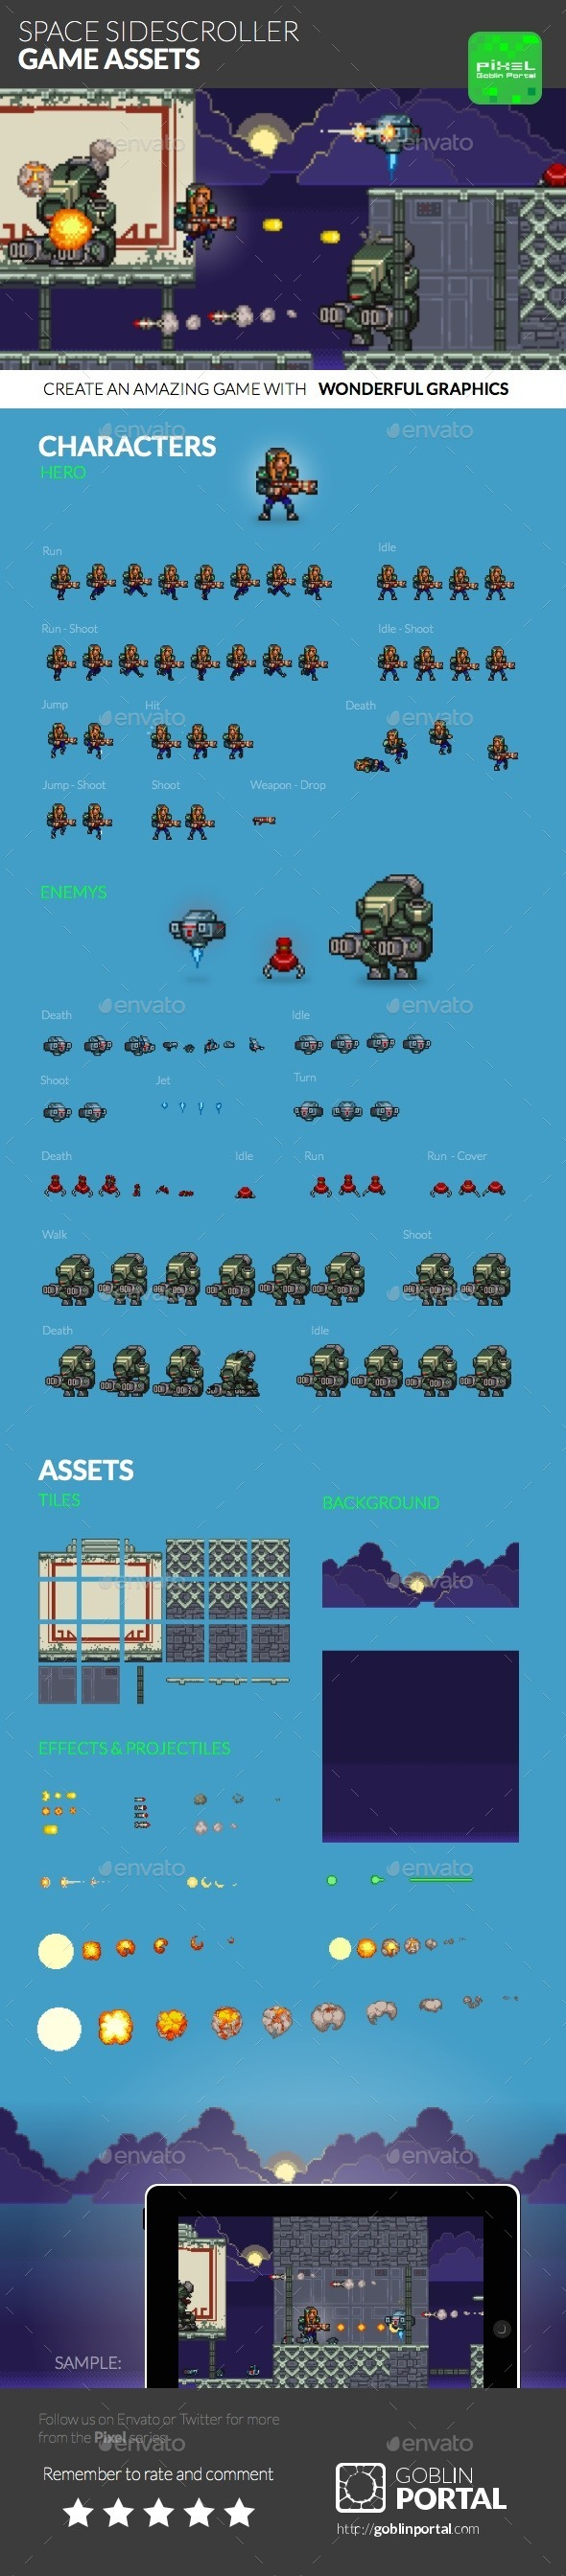 GraphicRiver Space Sidescroller Game Assets 8816860